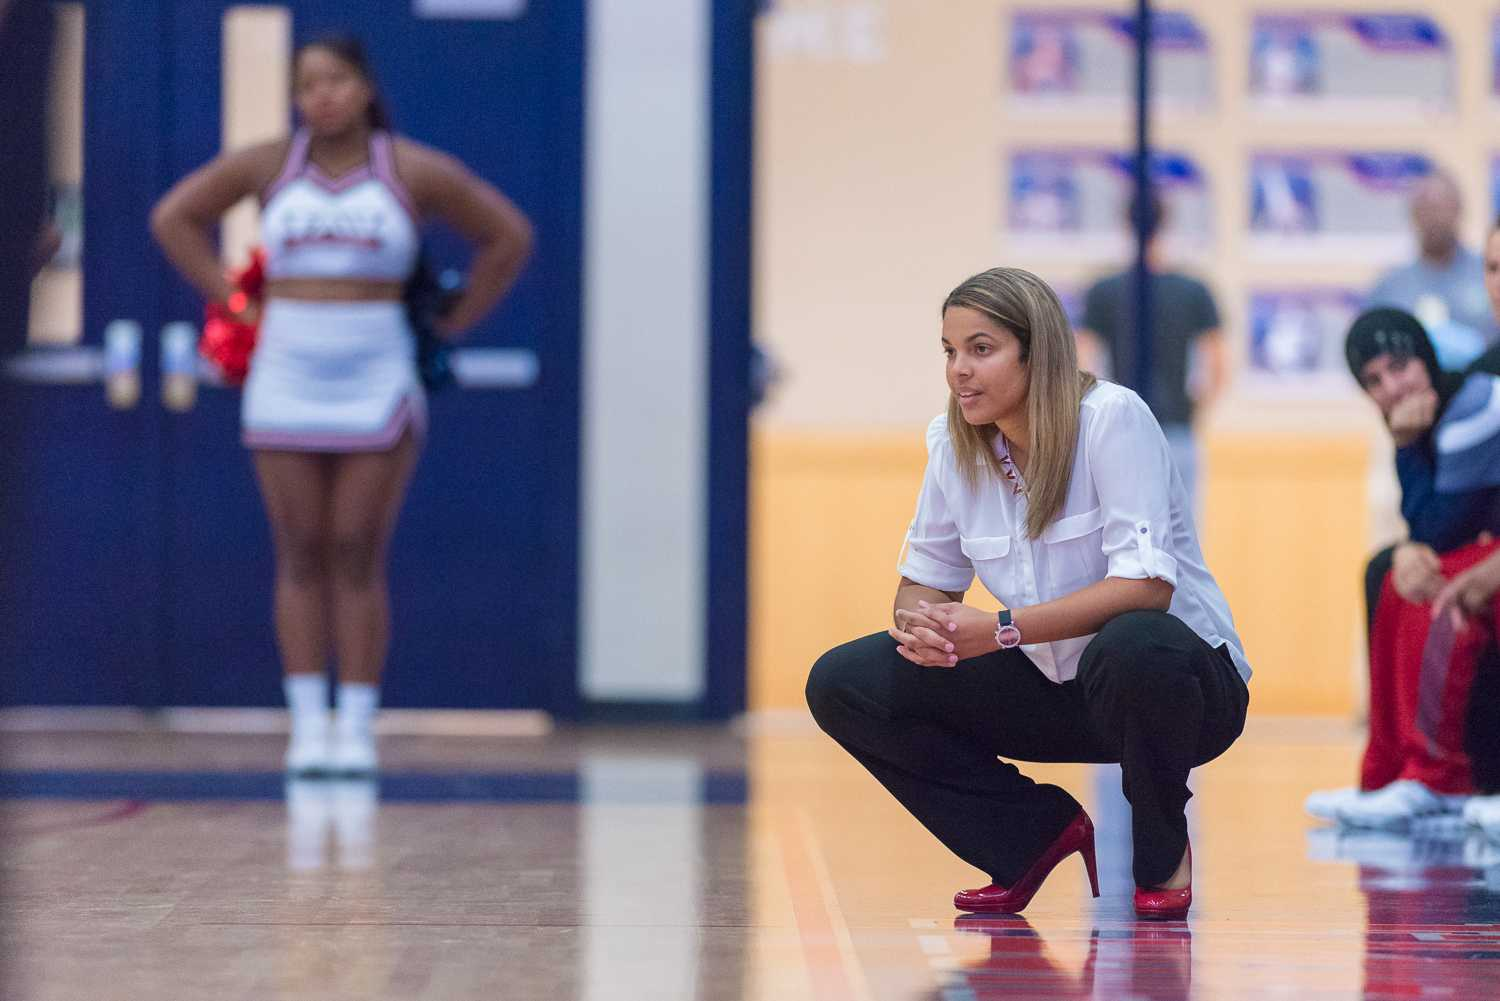 FAU Women's Basketball head coach Kellie Lewis-Jay observes her team on the court. Jay is entering her third season at the helm.